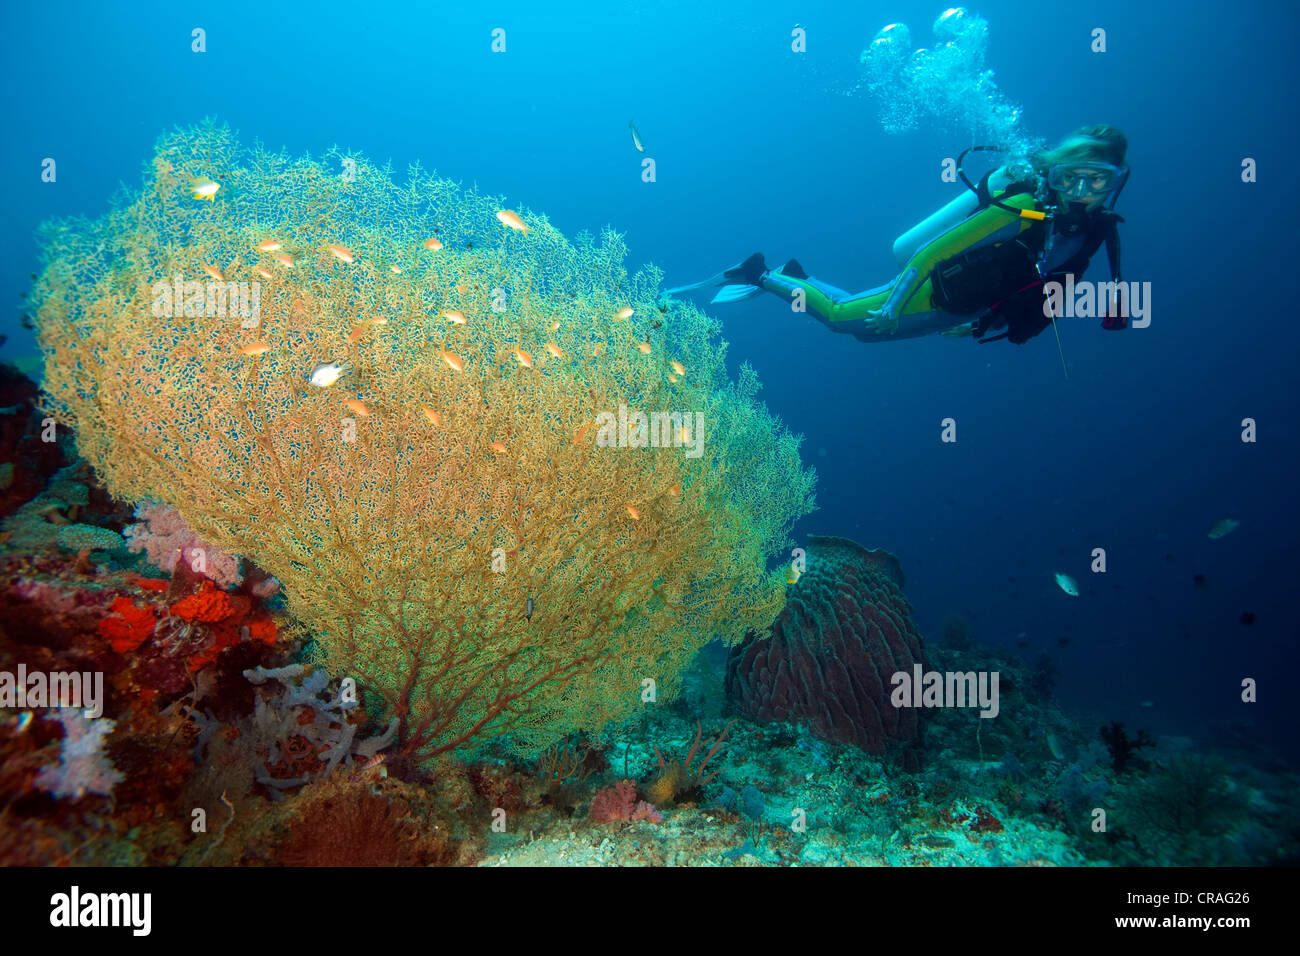 Diver in a coral reef, Padre Burgos, Southern Leyte, Philippines, Asia - Stock Image